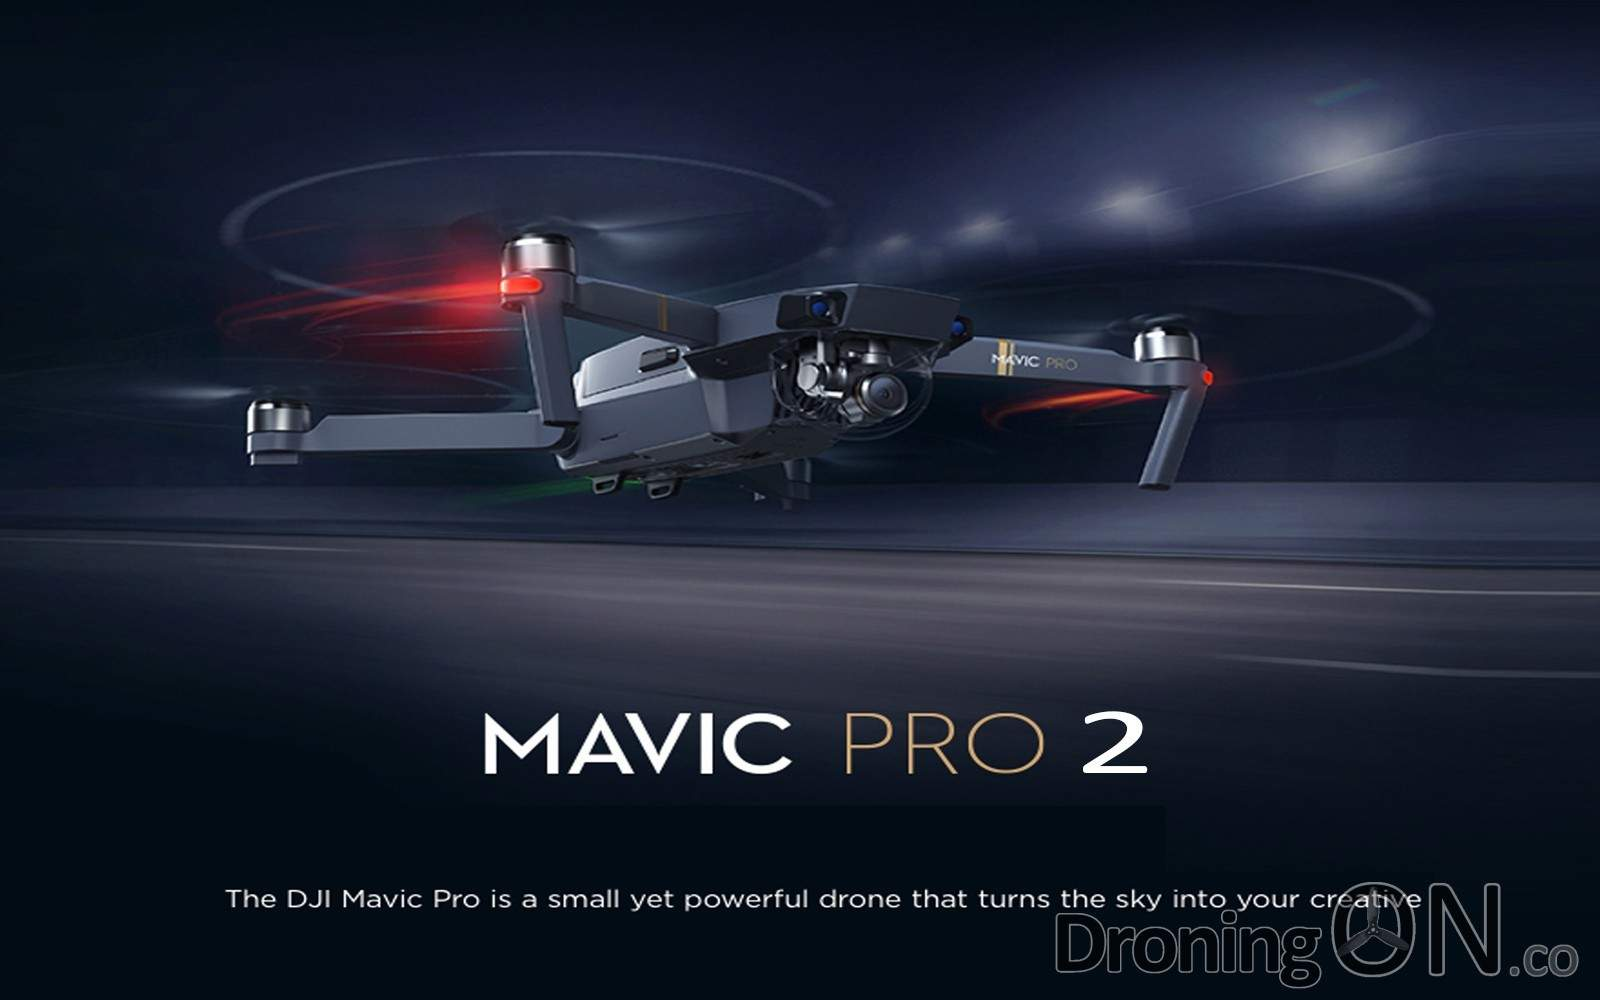 DJI Mavic Pro 2 Features And Specification